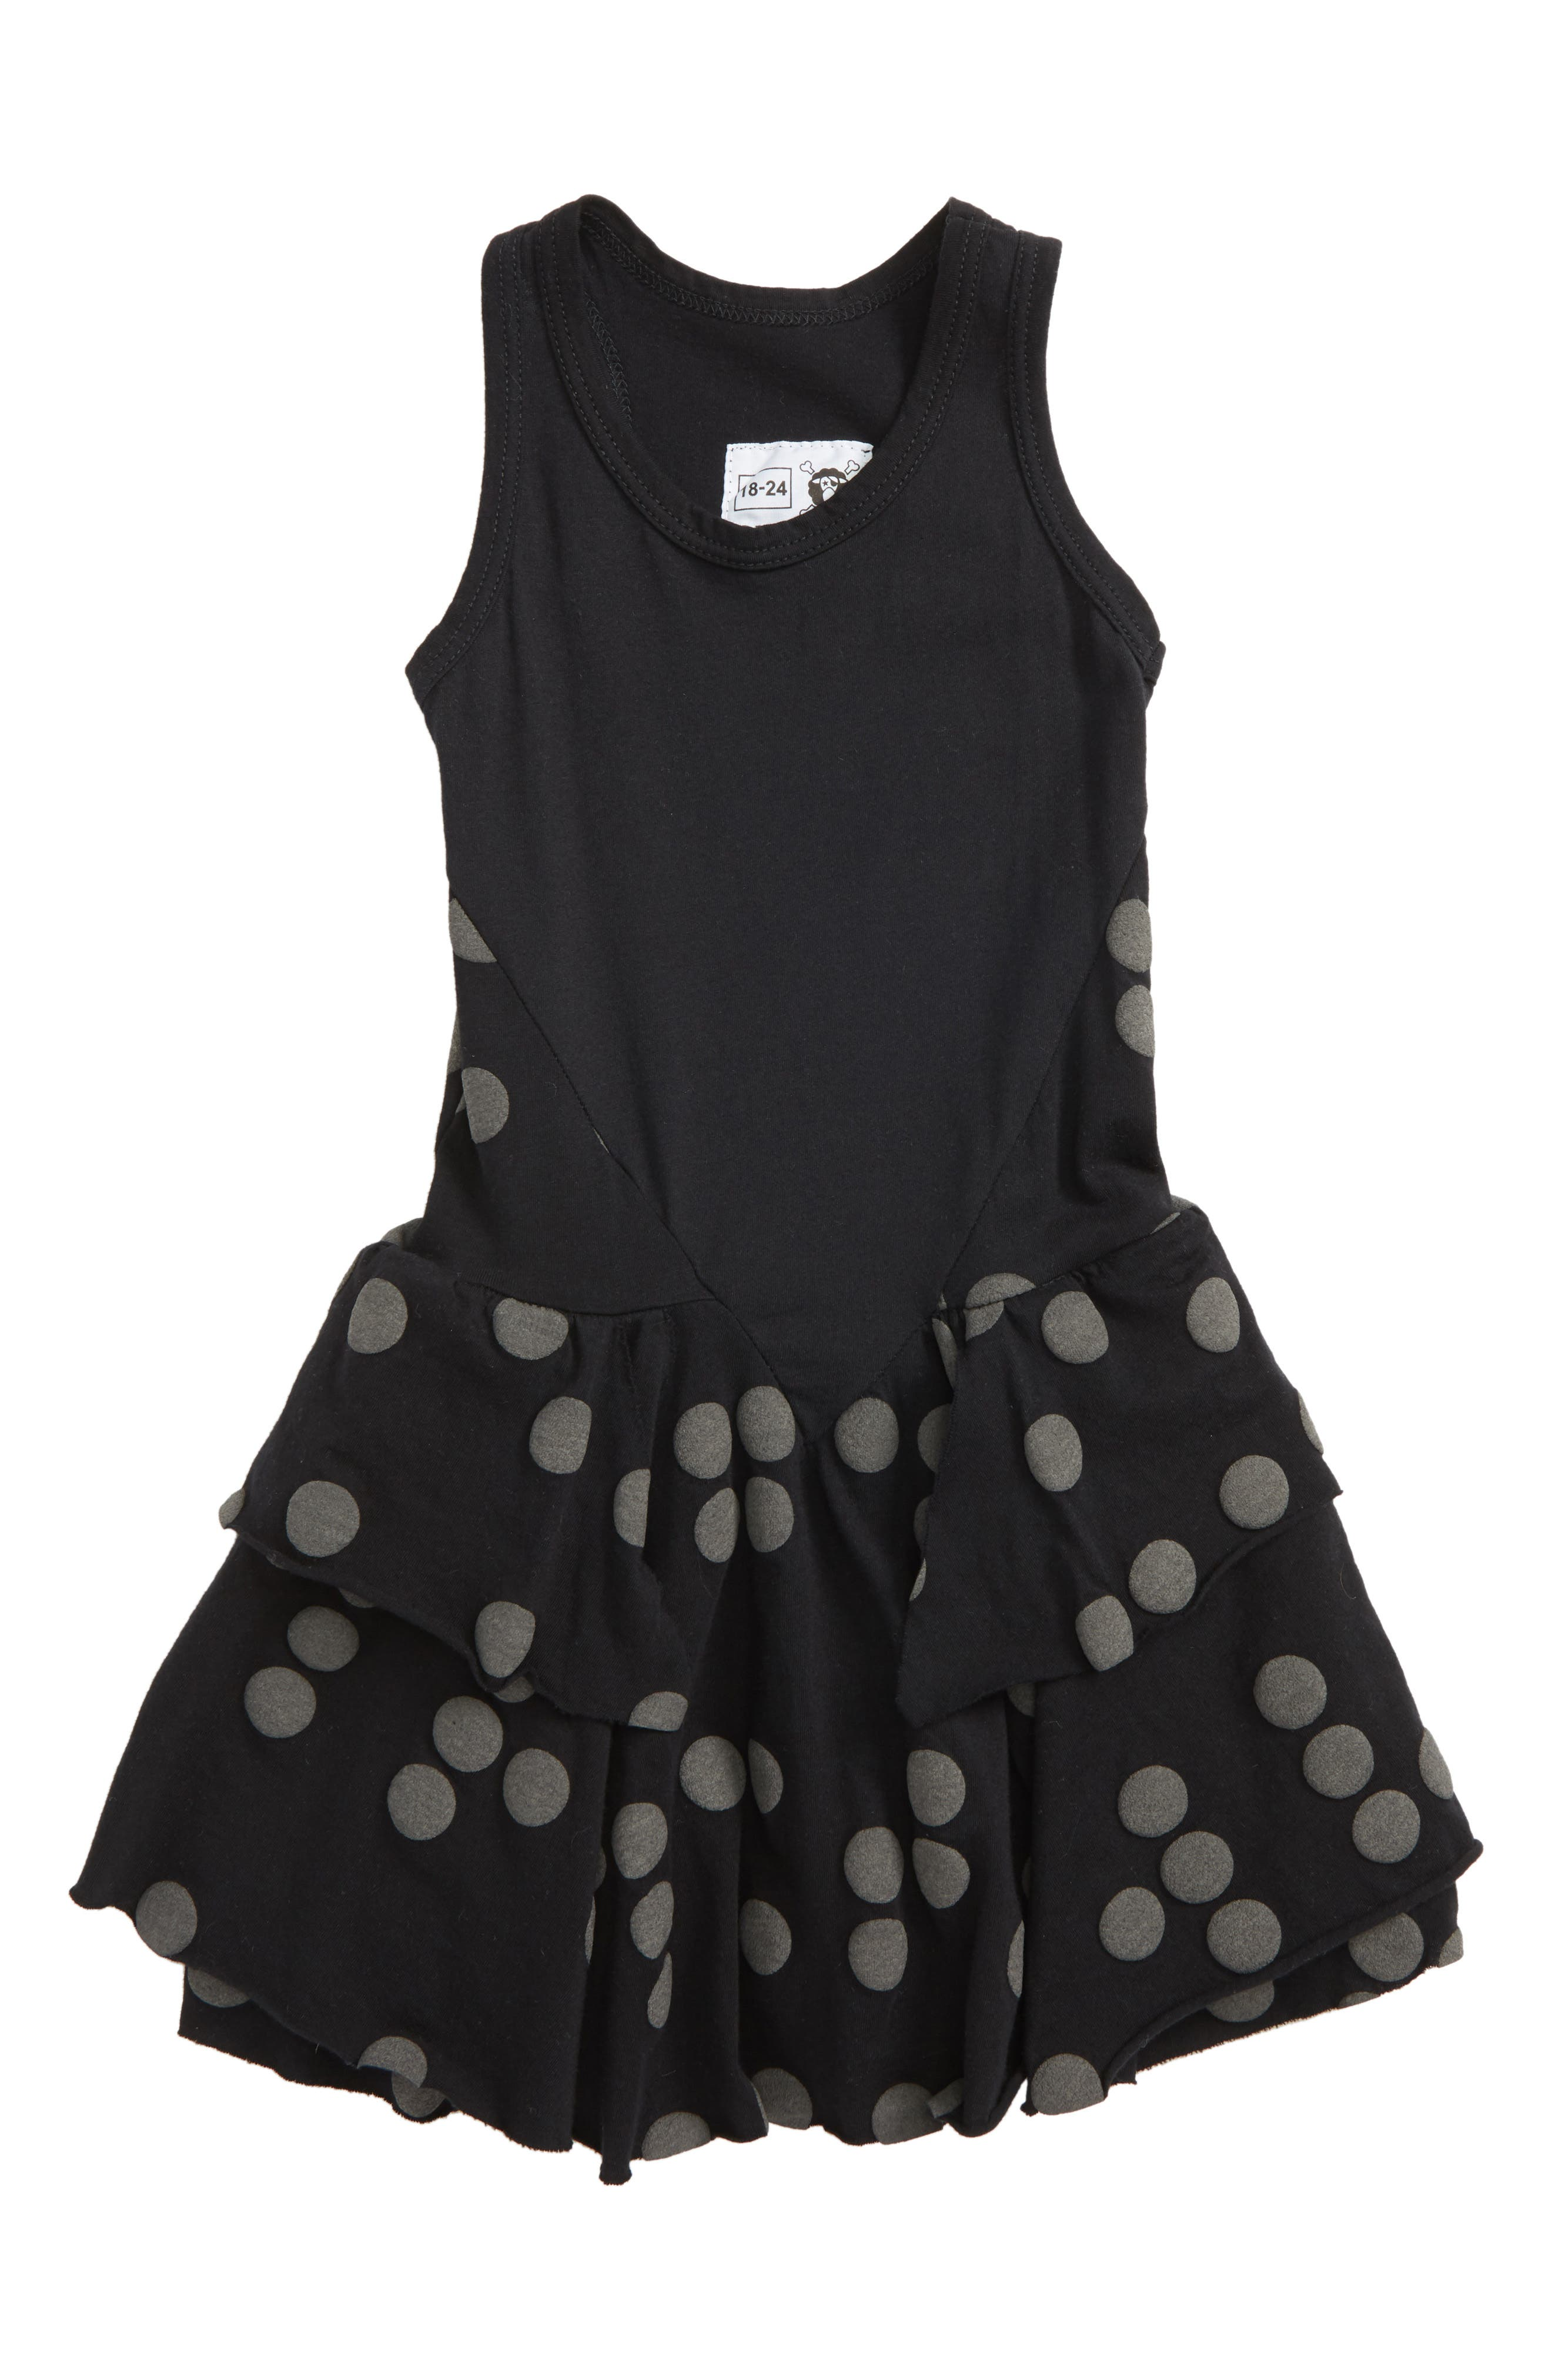 Braille Dot Layered Tank Dress,                         Main,                         color, Black